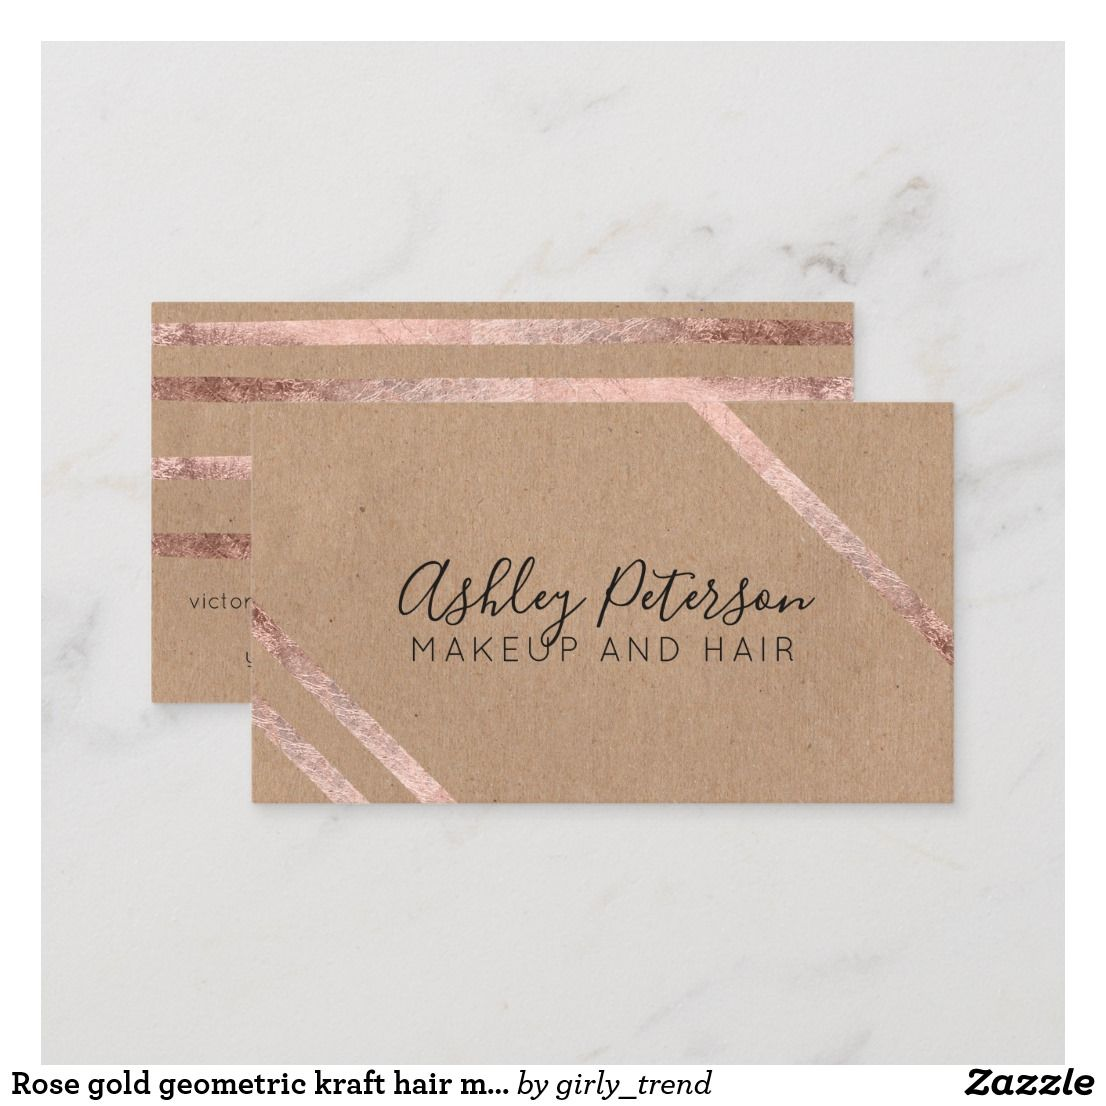 Rose Gold Geometric Kraft Hair Makeup Typography Business Card Zazzle Com Typography Business Cards Beauty Business Cards Simple Business Cards